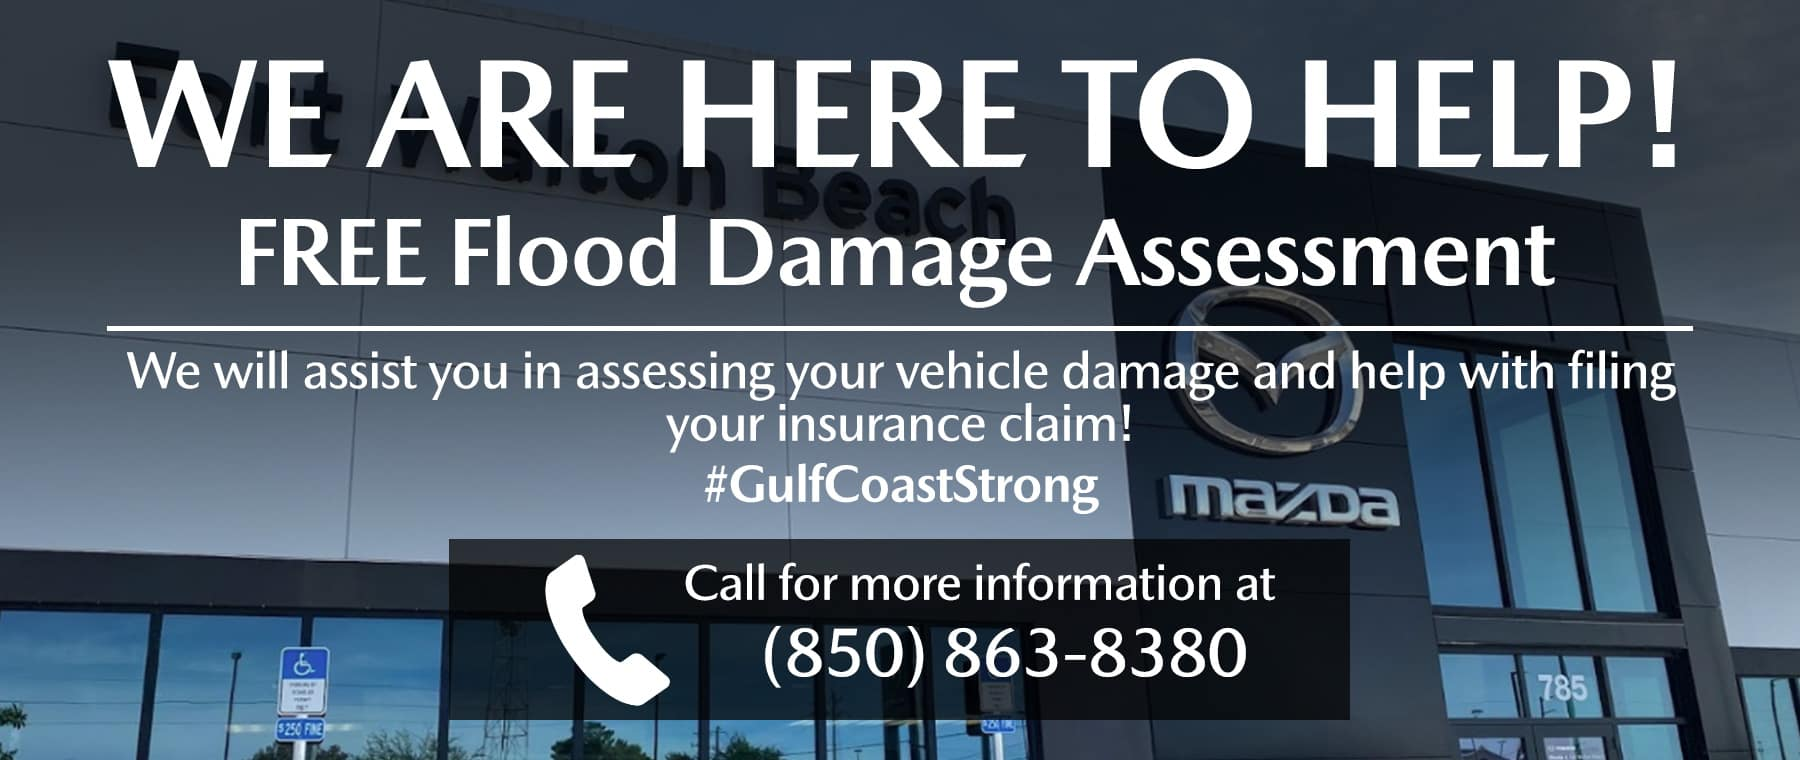 Free Flood Damage Assessment at Mazda of Fort Walton Beach